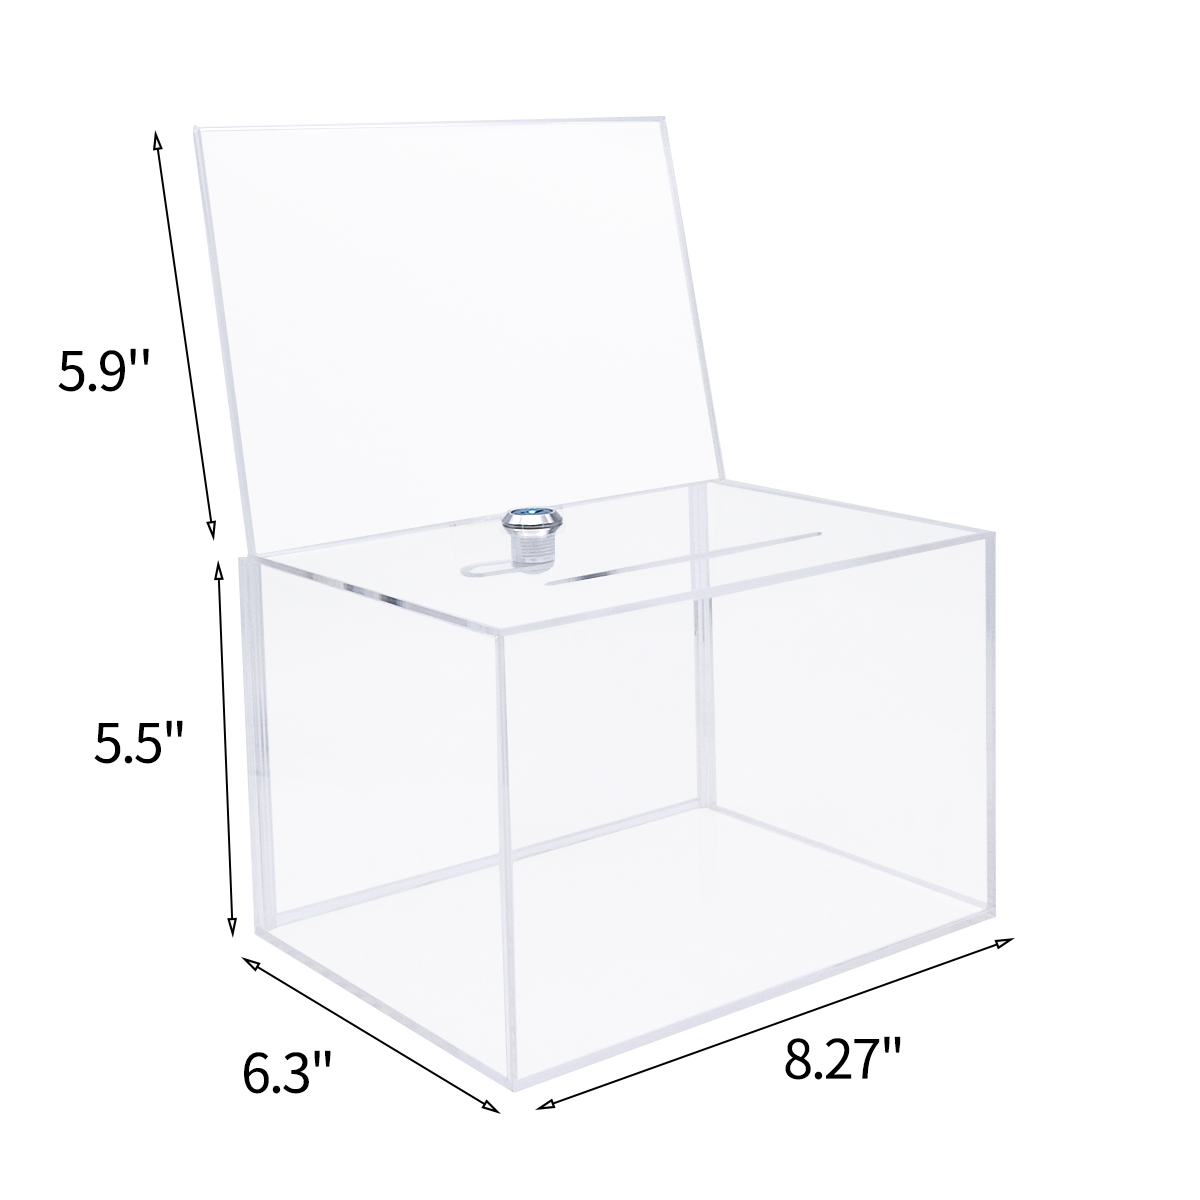 wholesale acrylic charity donation box/large donation box